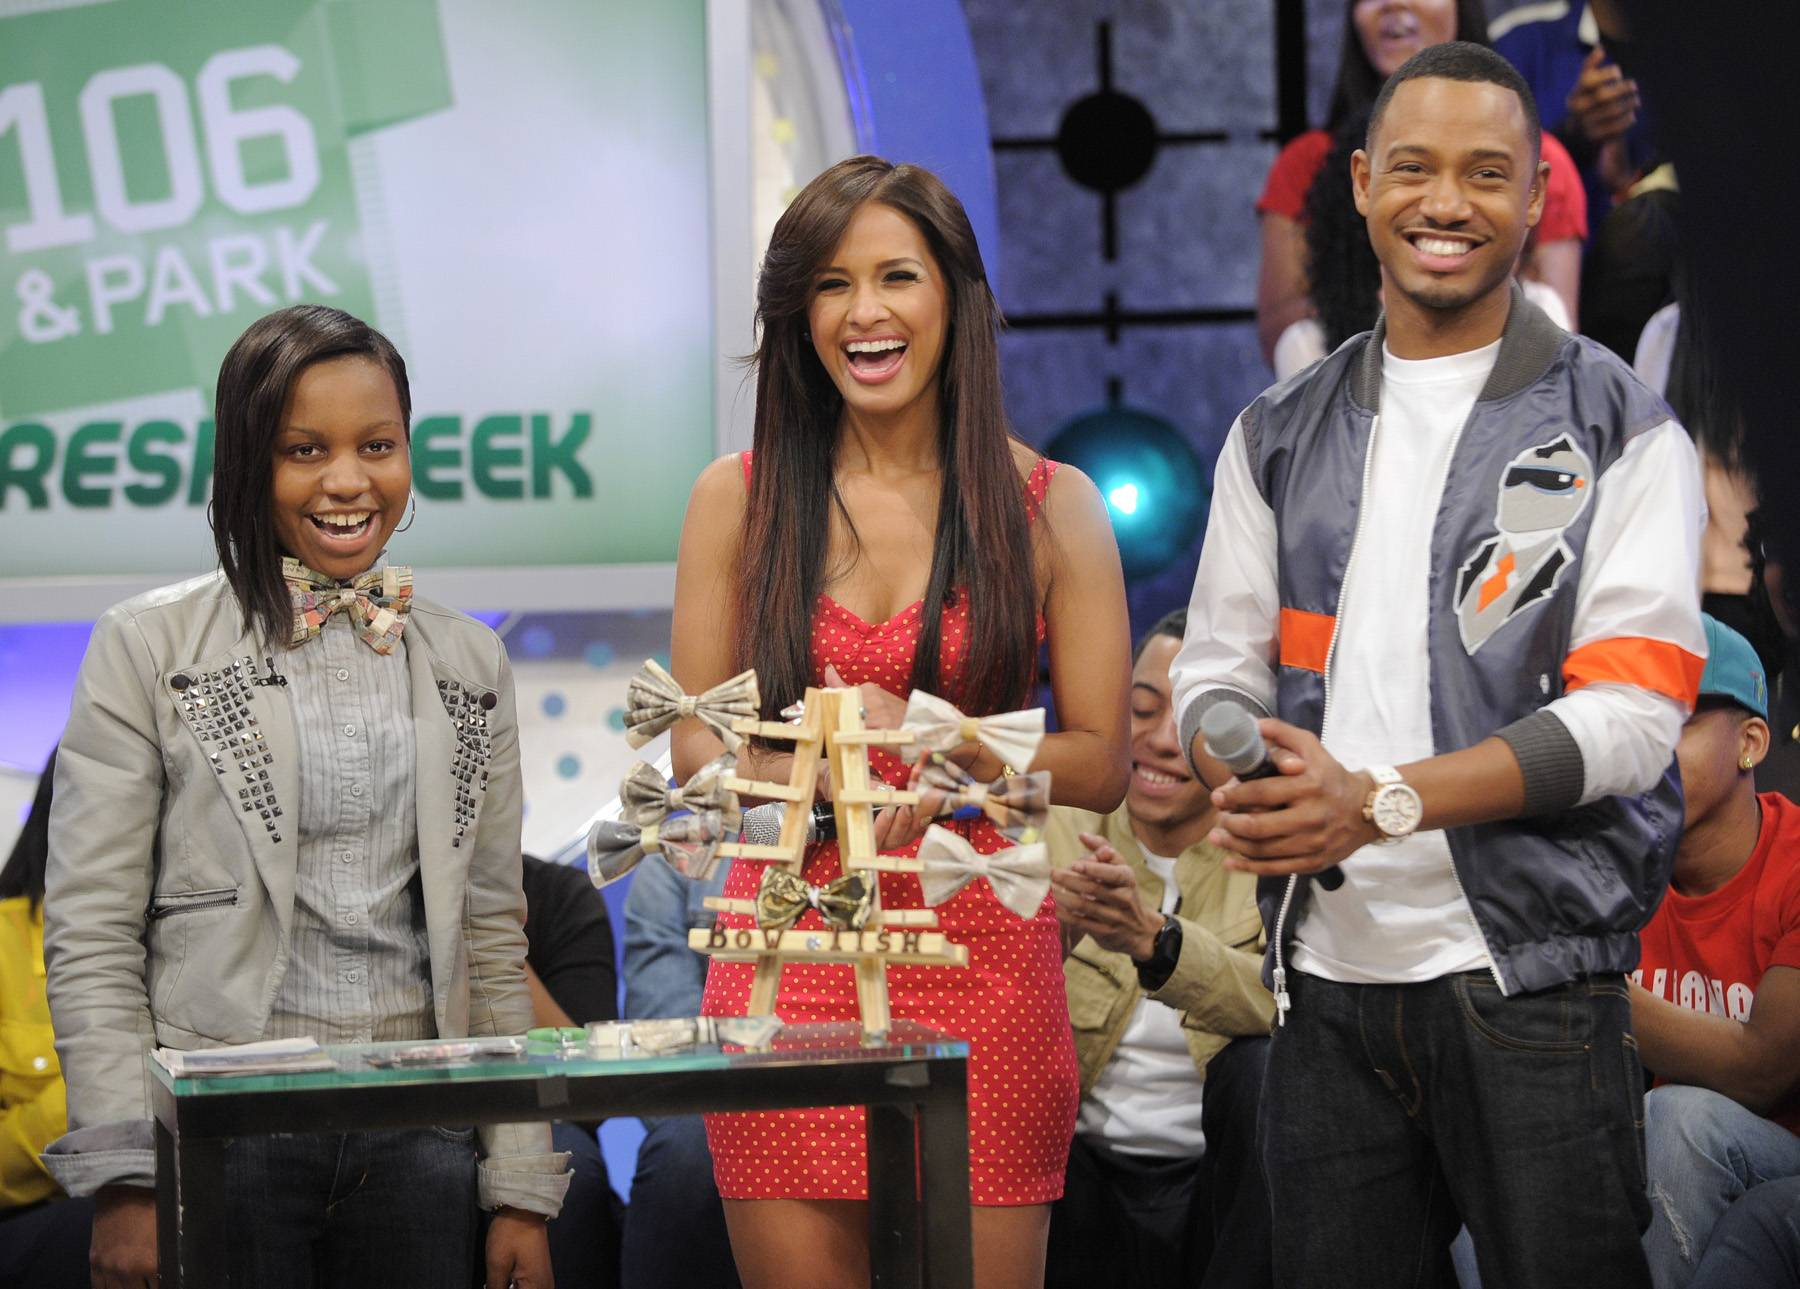 """Bow Tie Fun - Tisha Johnson shows Rocsi Diaz and Terrence J bow ties she makes from recycled materials during """"Get Fresh Week"""" at 106 & Park, May 3, 2012. (Photo by: John Ricard / BET)"""